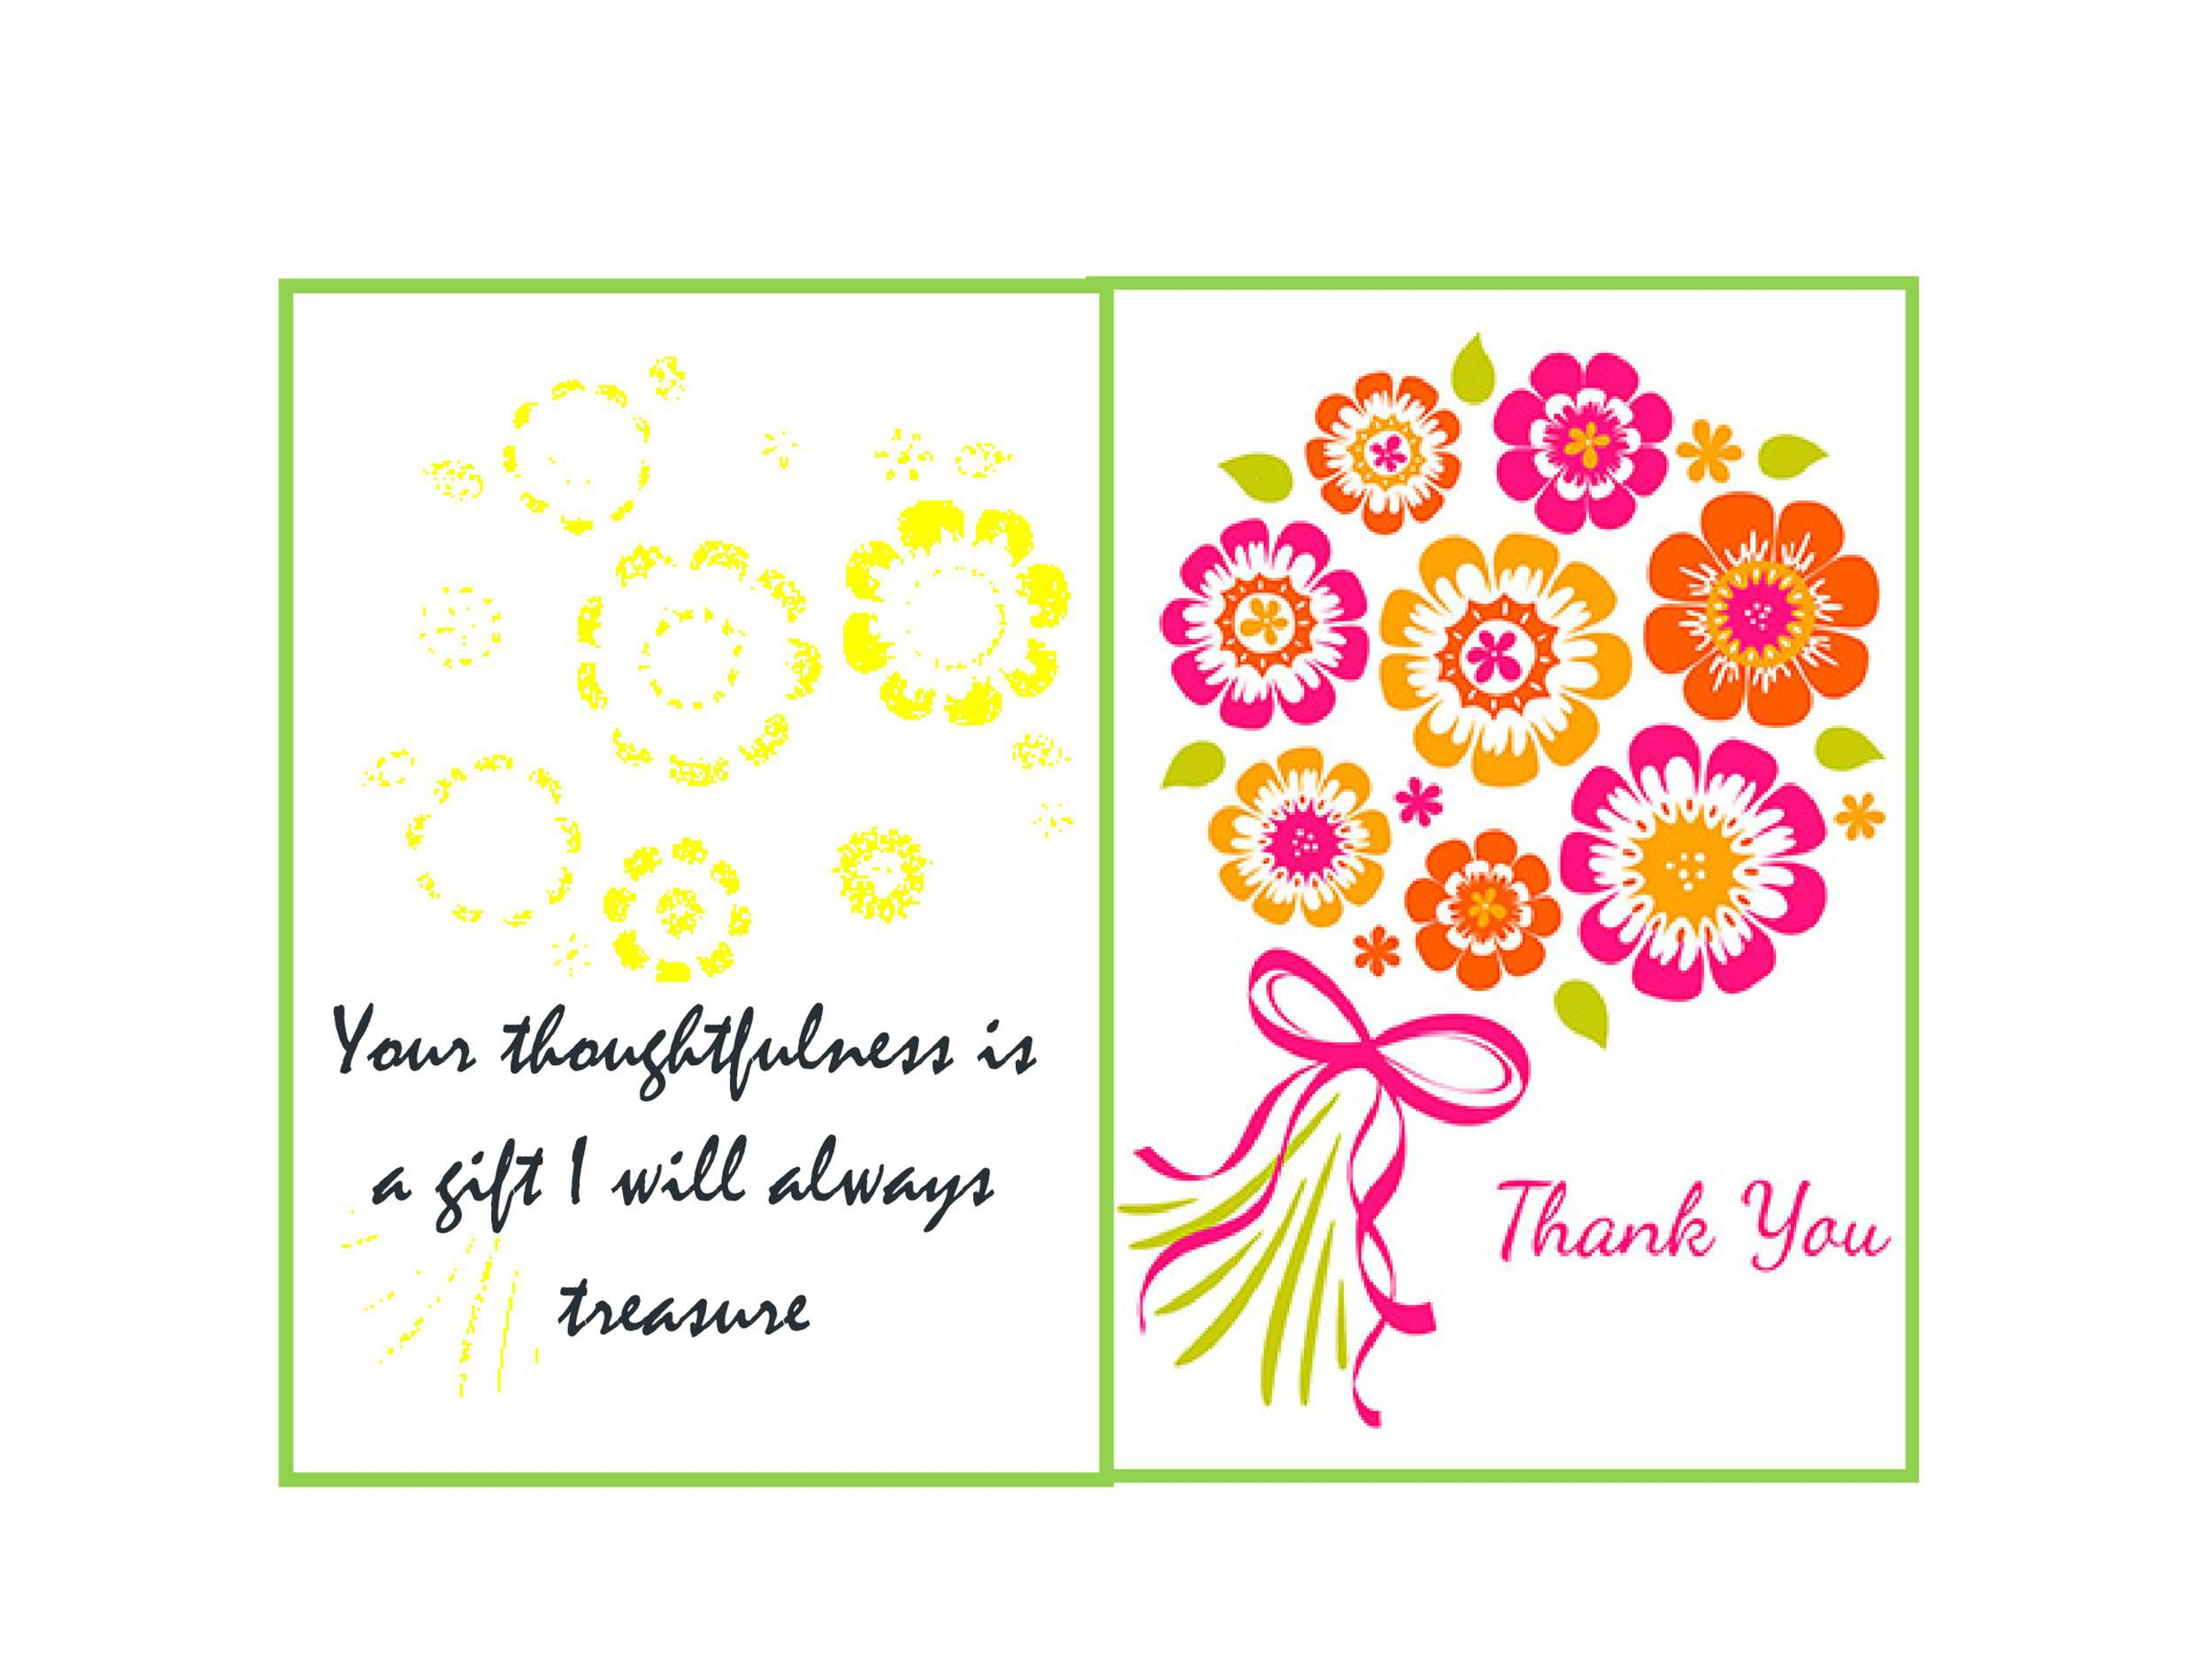 006 Stirring Free Thank You Card Template Image  Google Doc For Funeral Microsoft WordFull